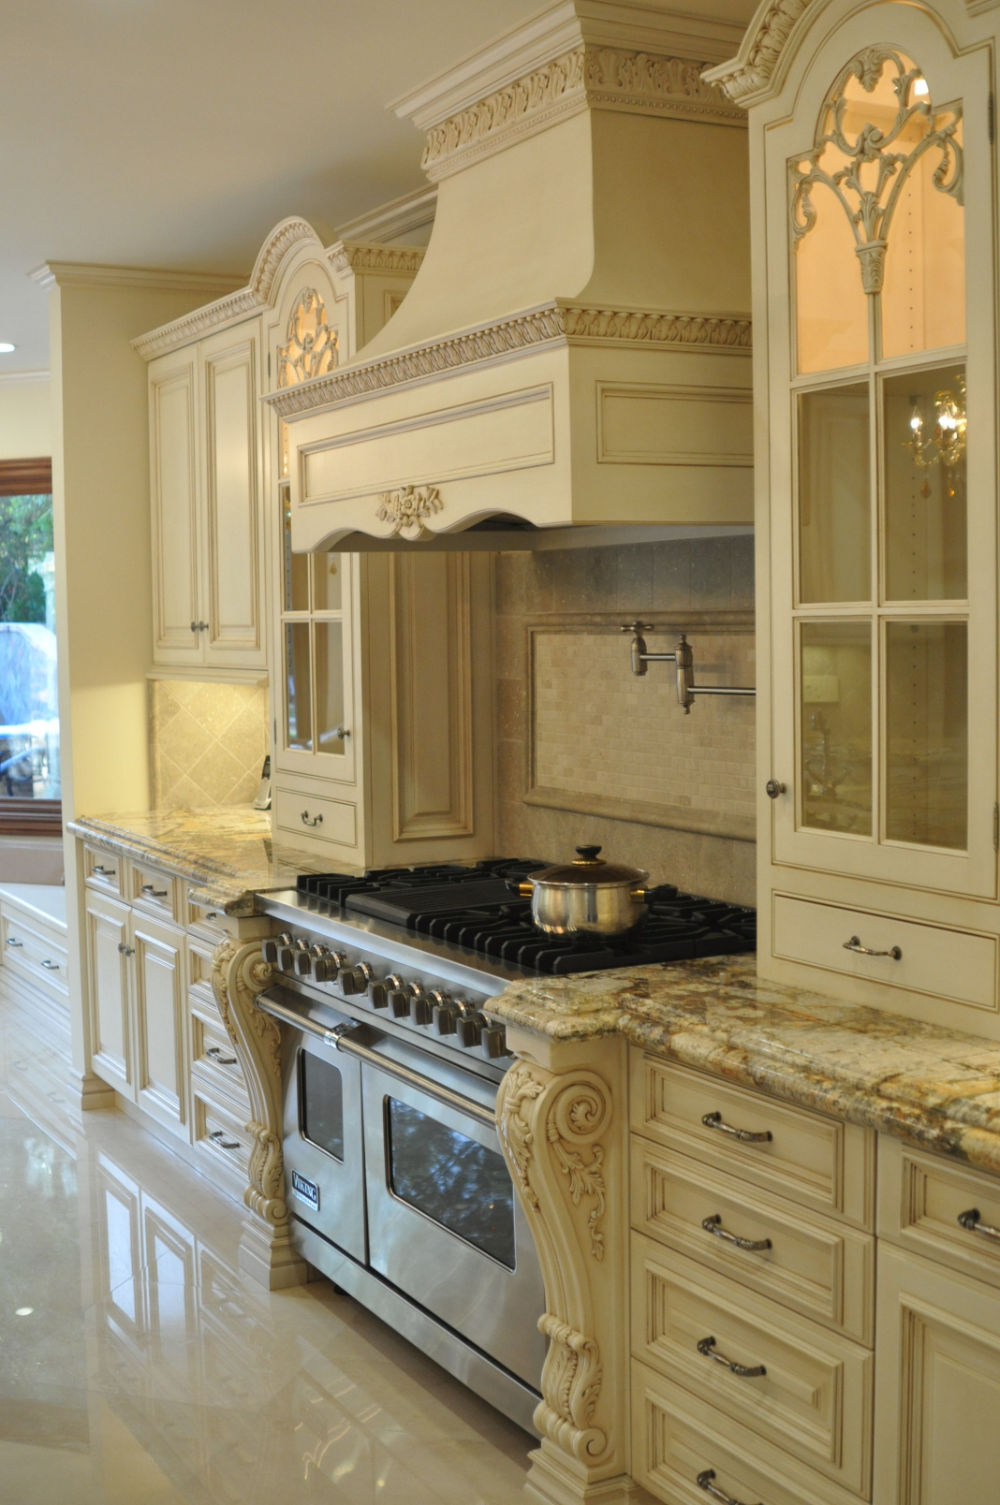 glazed cabinets | Cream kitchen cabinets, Country kitchen ...